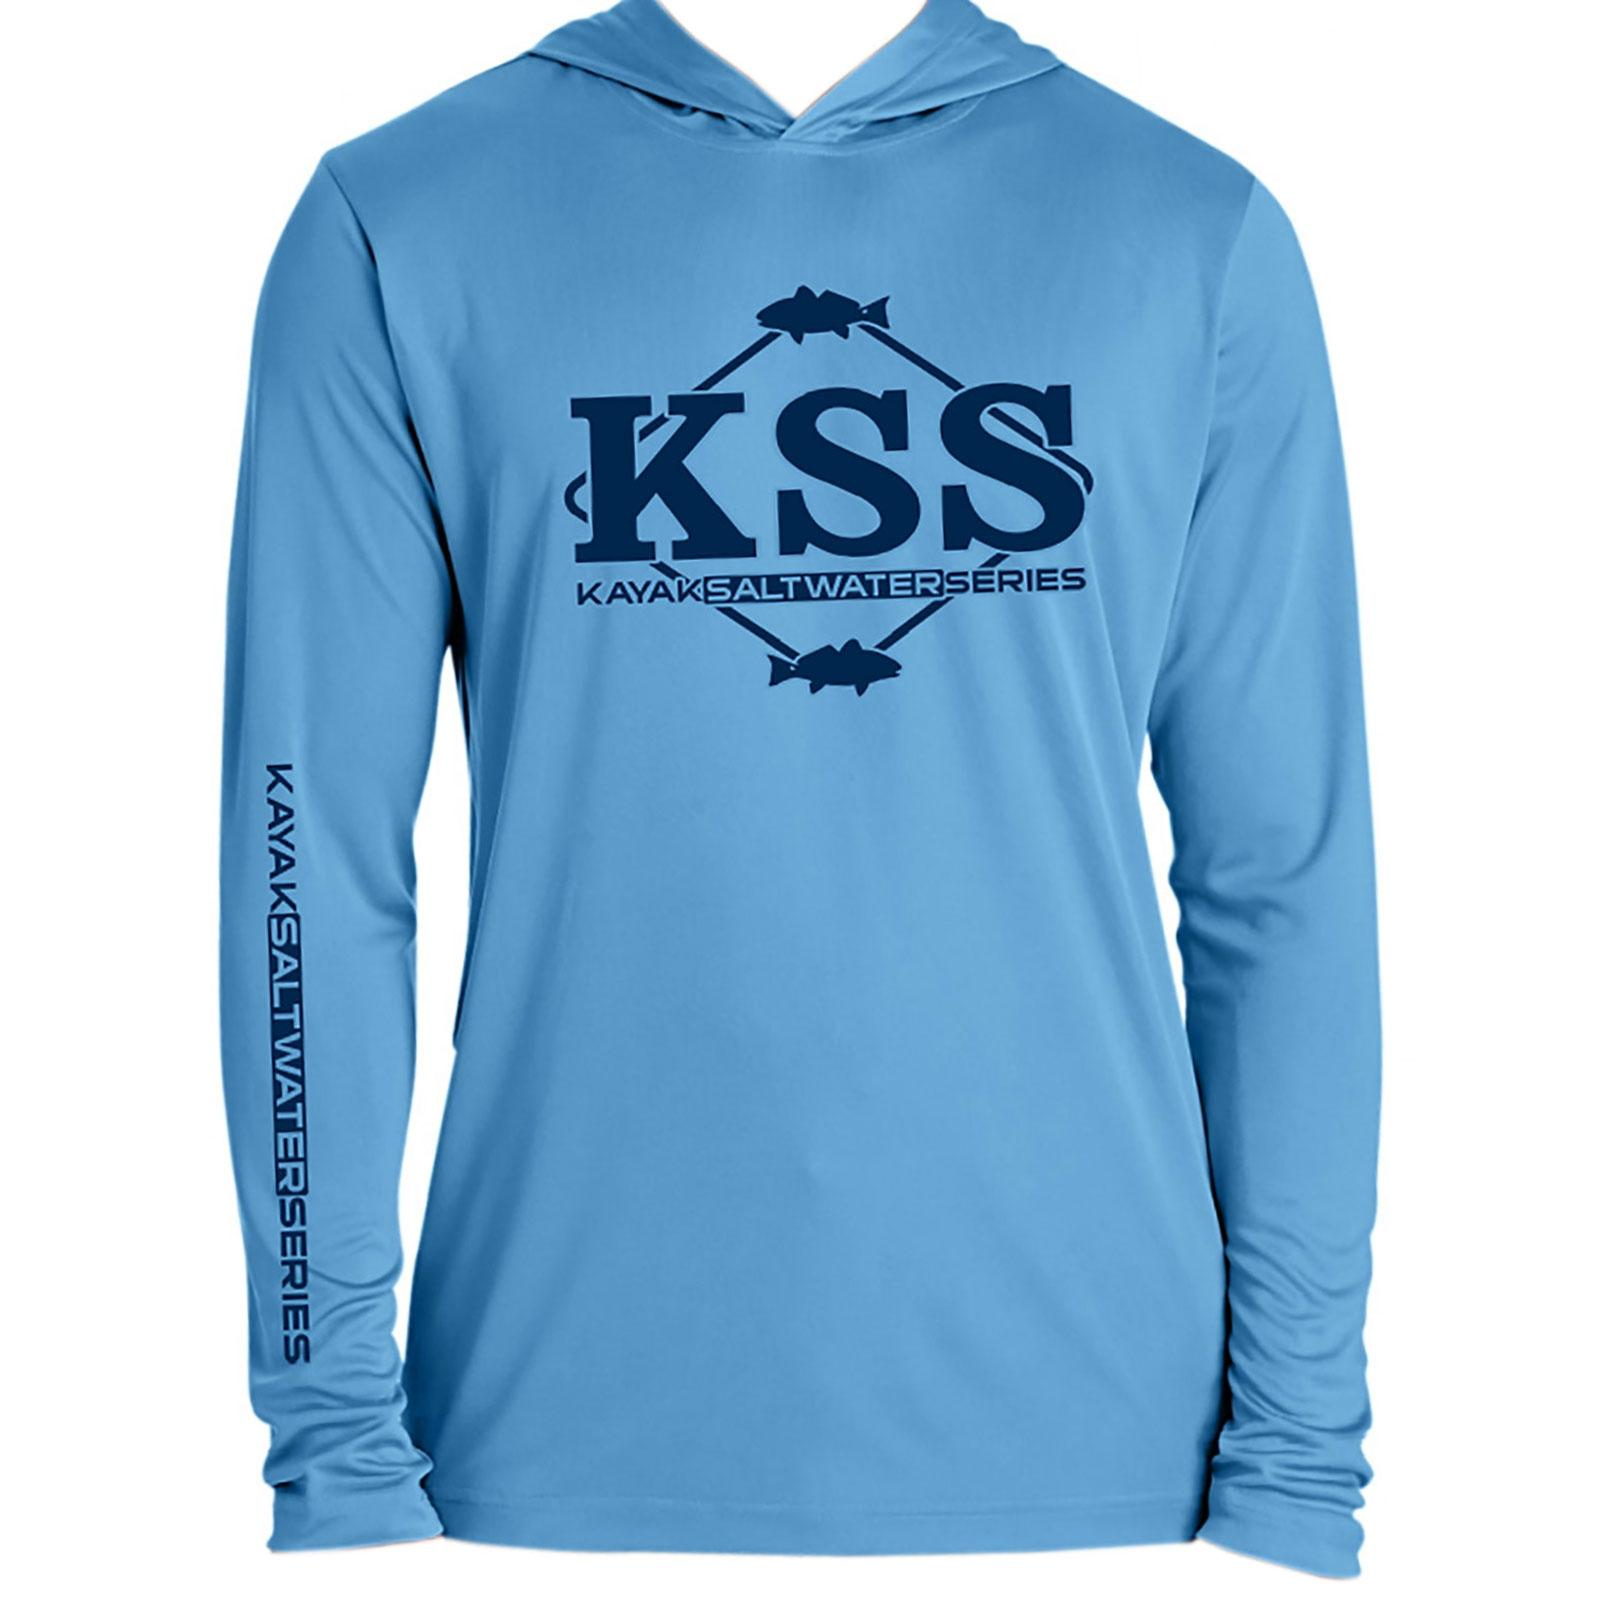 Kayak Saltwater Series Men's Performance Hoodie